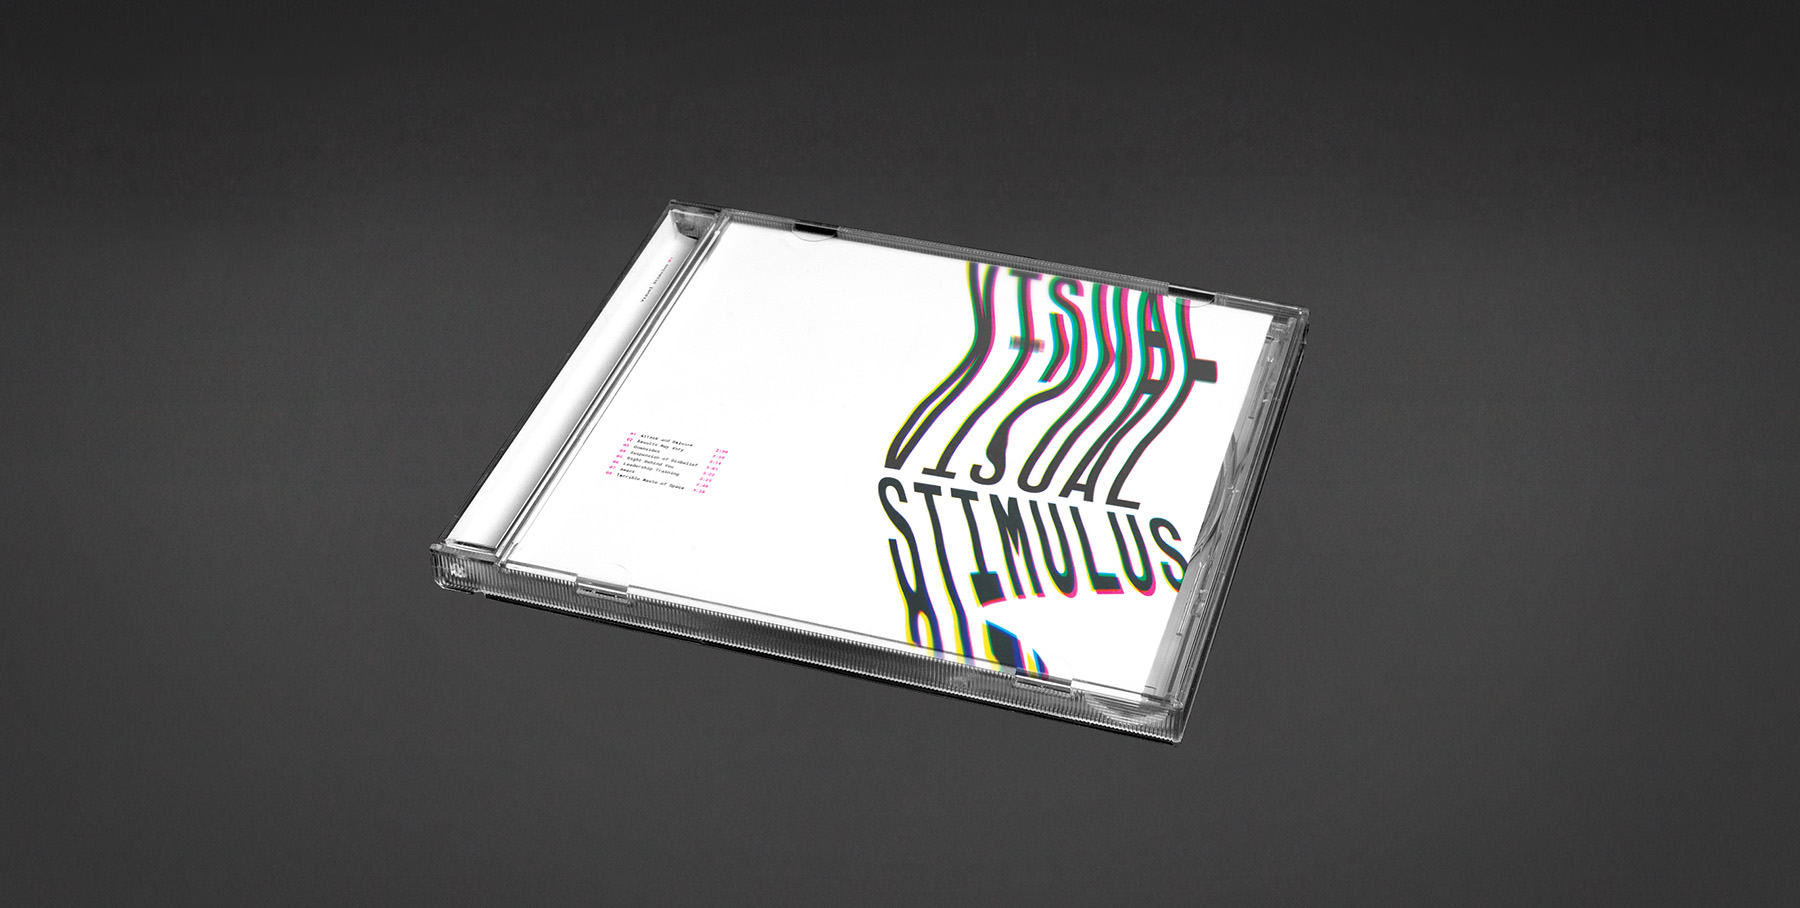 Visual-Stimulus-CD-front-Perspective